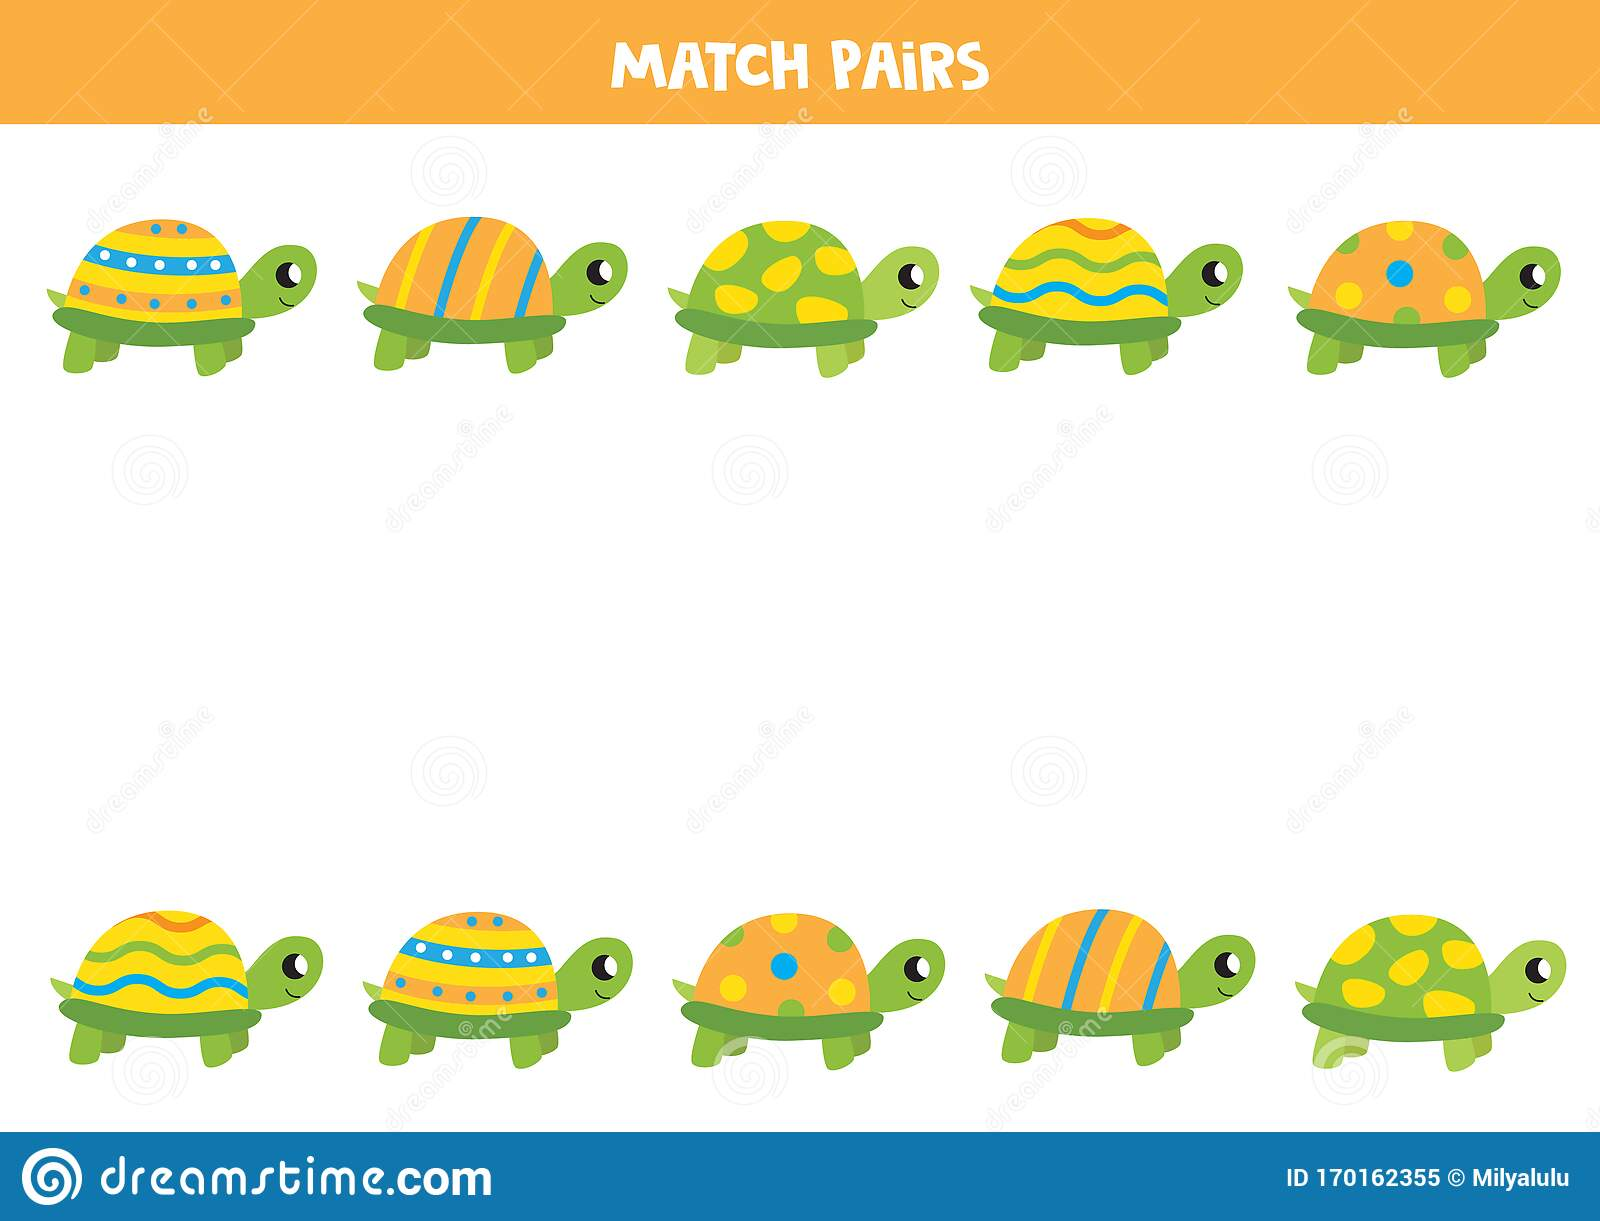 Cartoon Turtle Matching Game Find Pair To Each Turtle